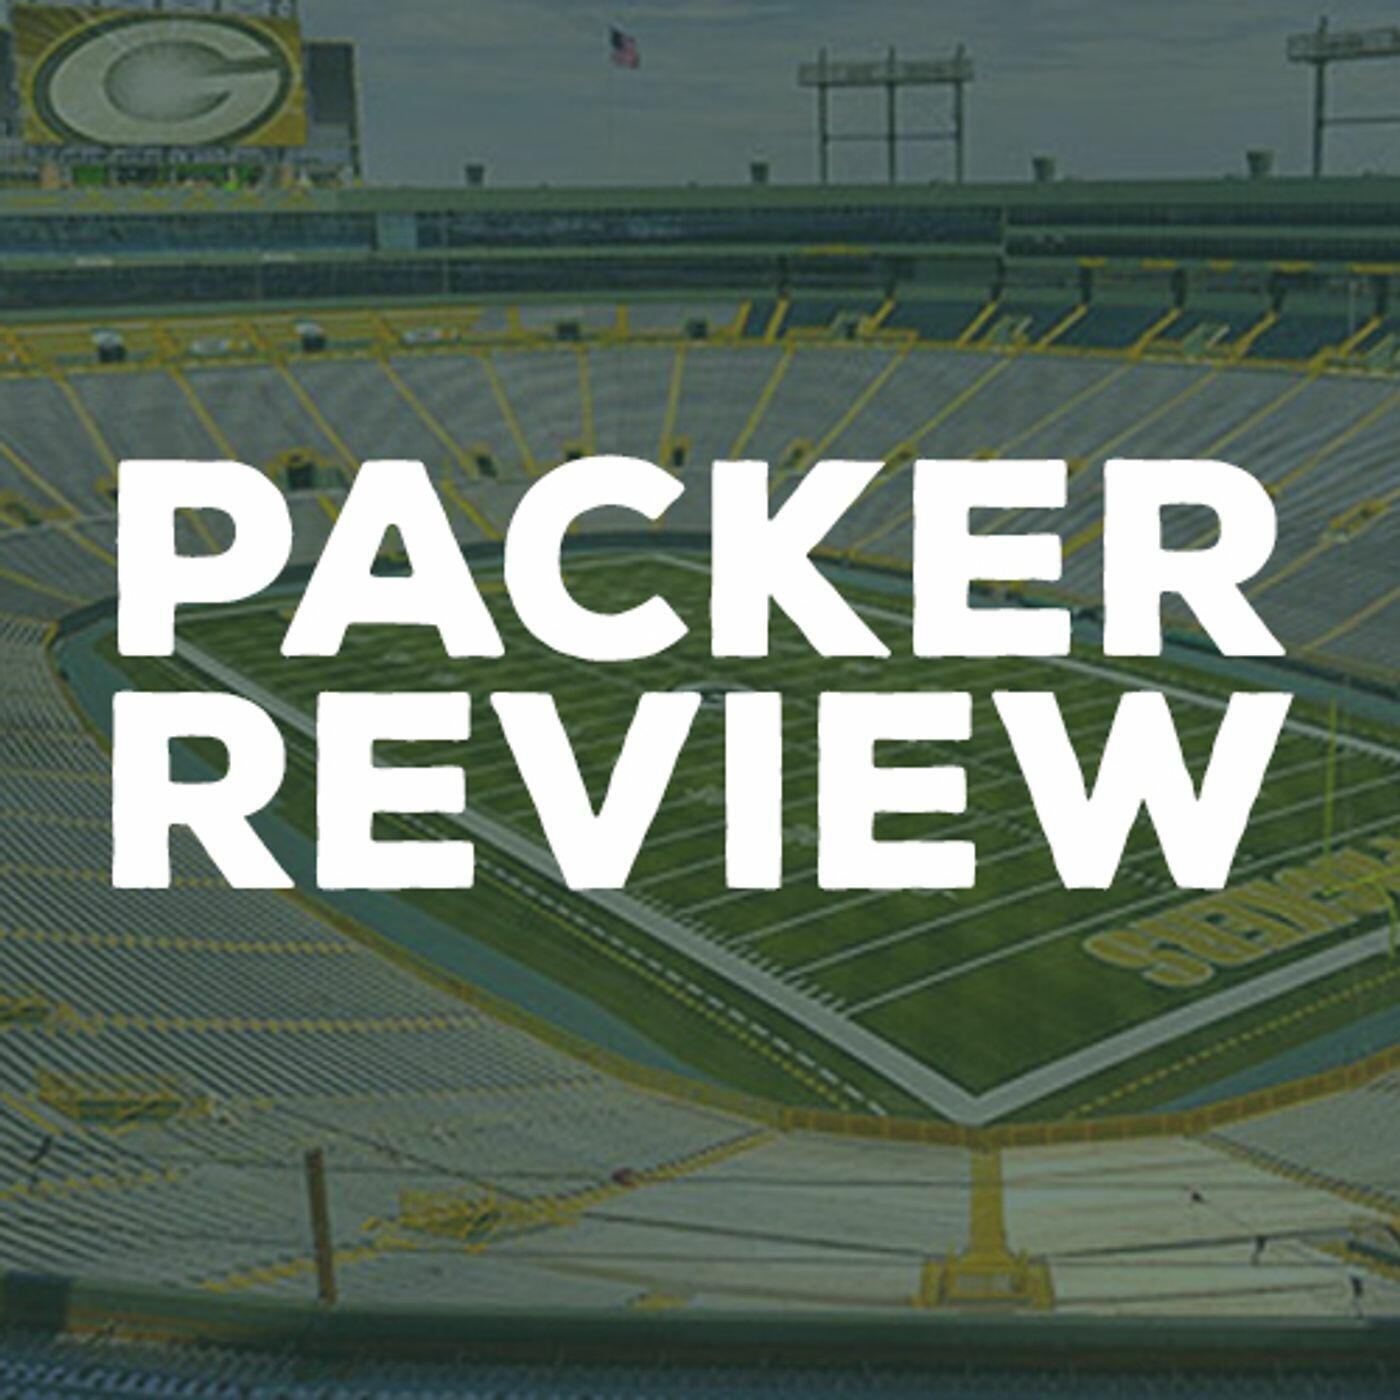 Packer Review